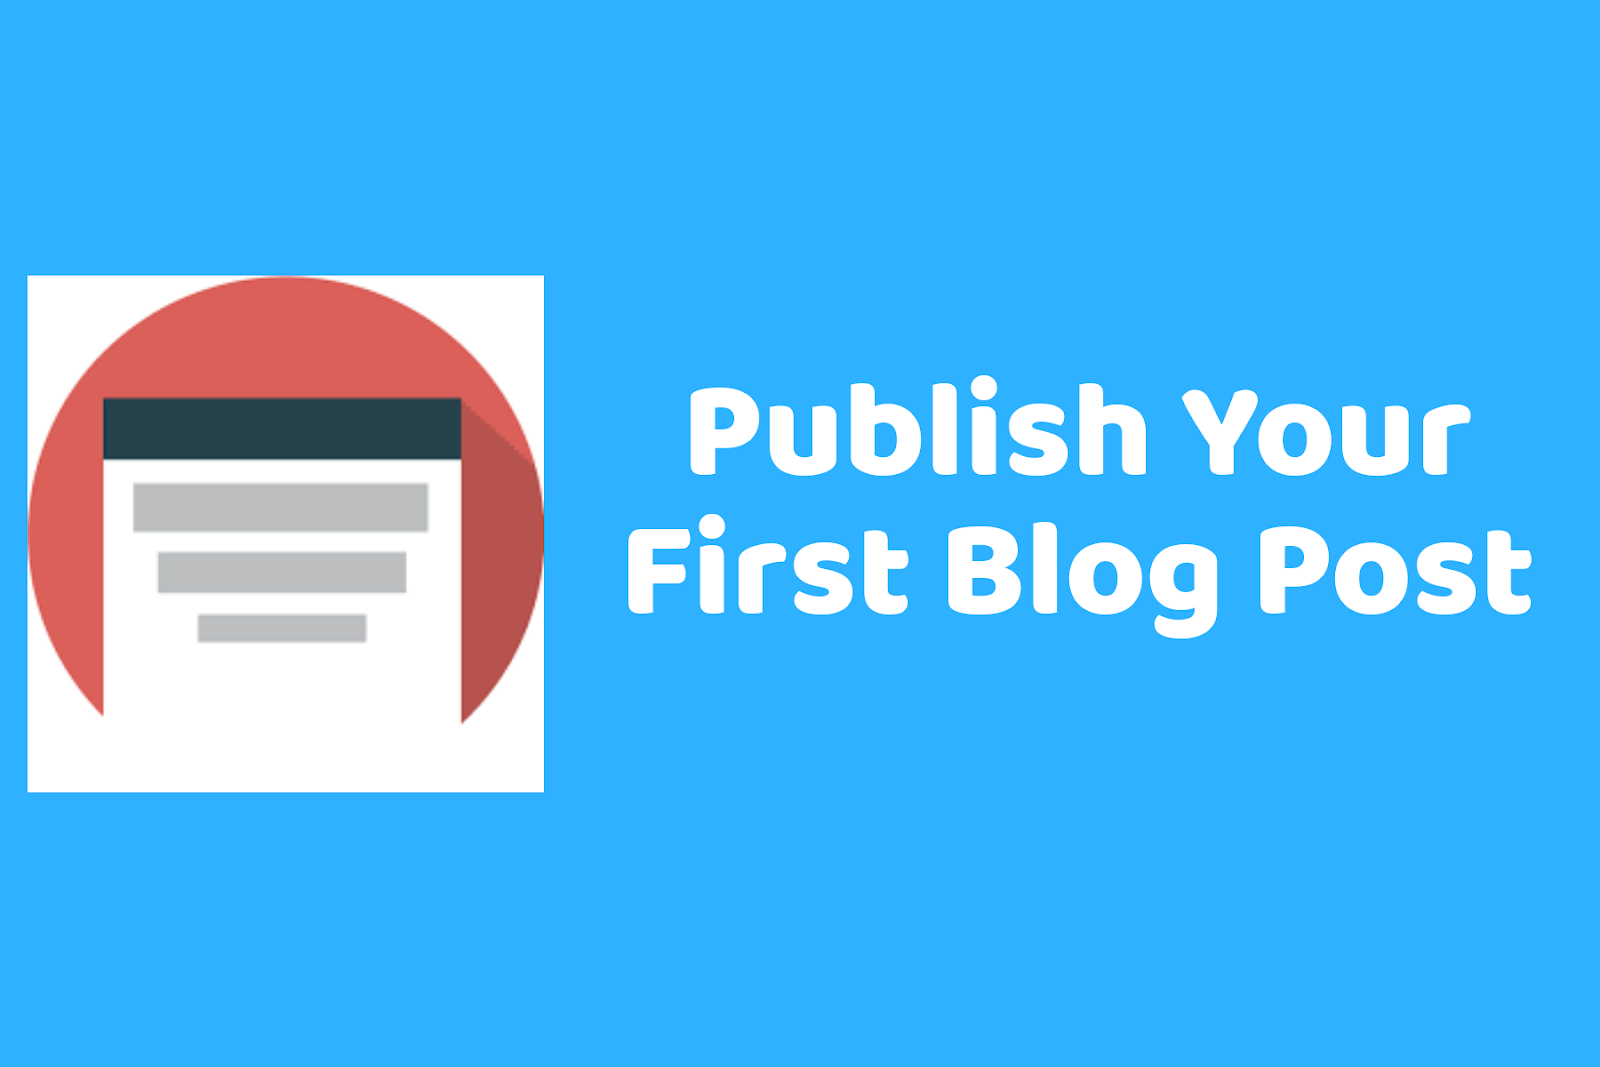 Publish your blog post